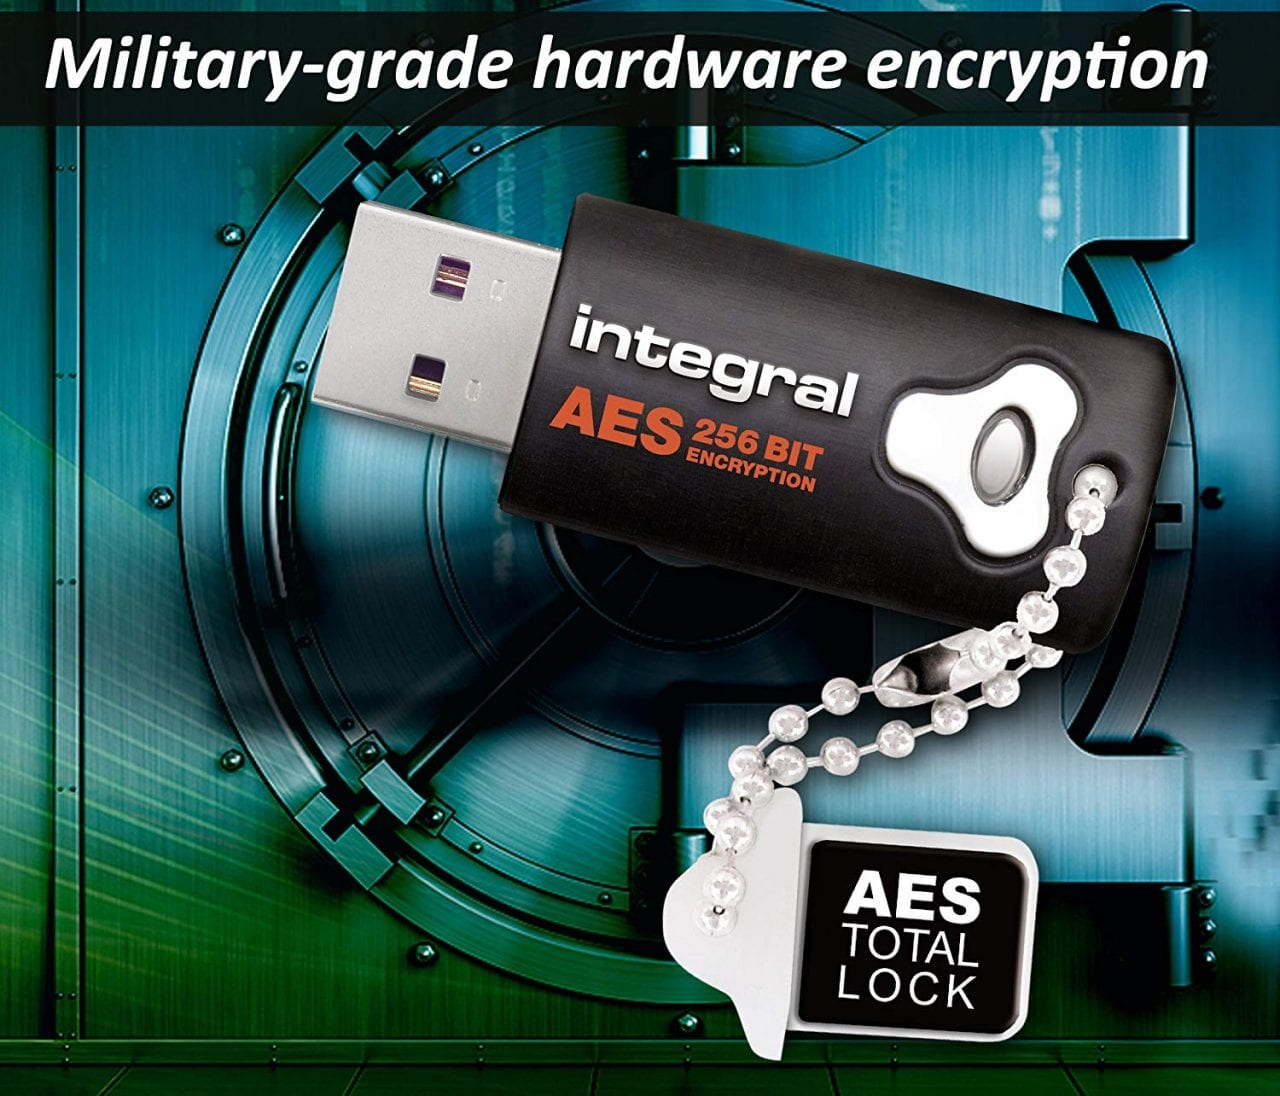 16GB Integral Crypto Drive FIPS 197 Encrypted USB3.0 Flash Drive AES 256-bit